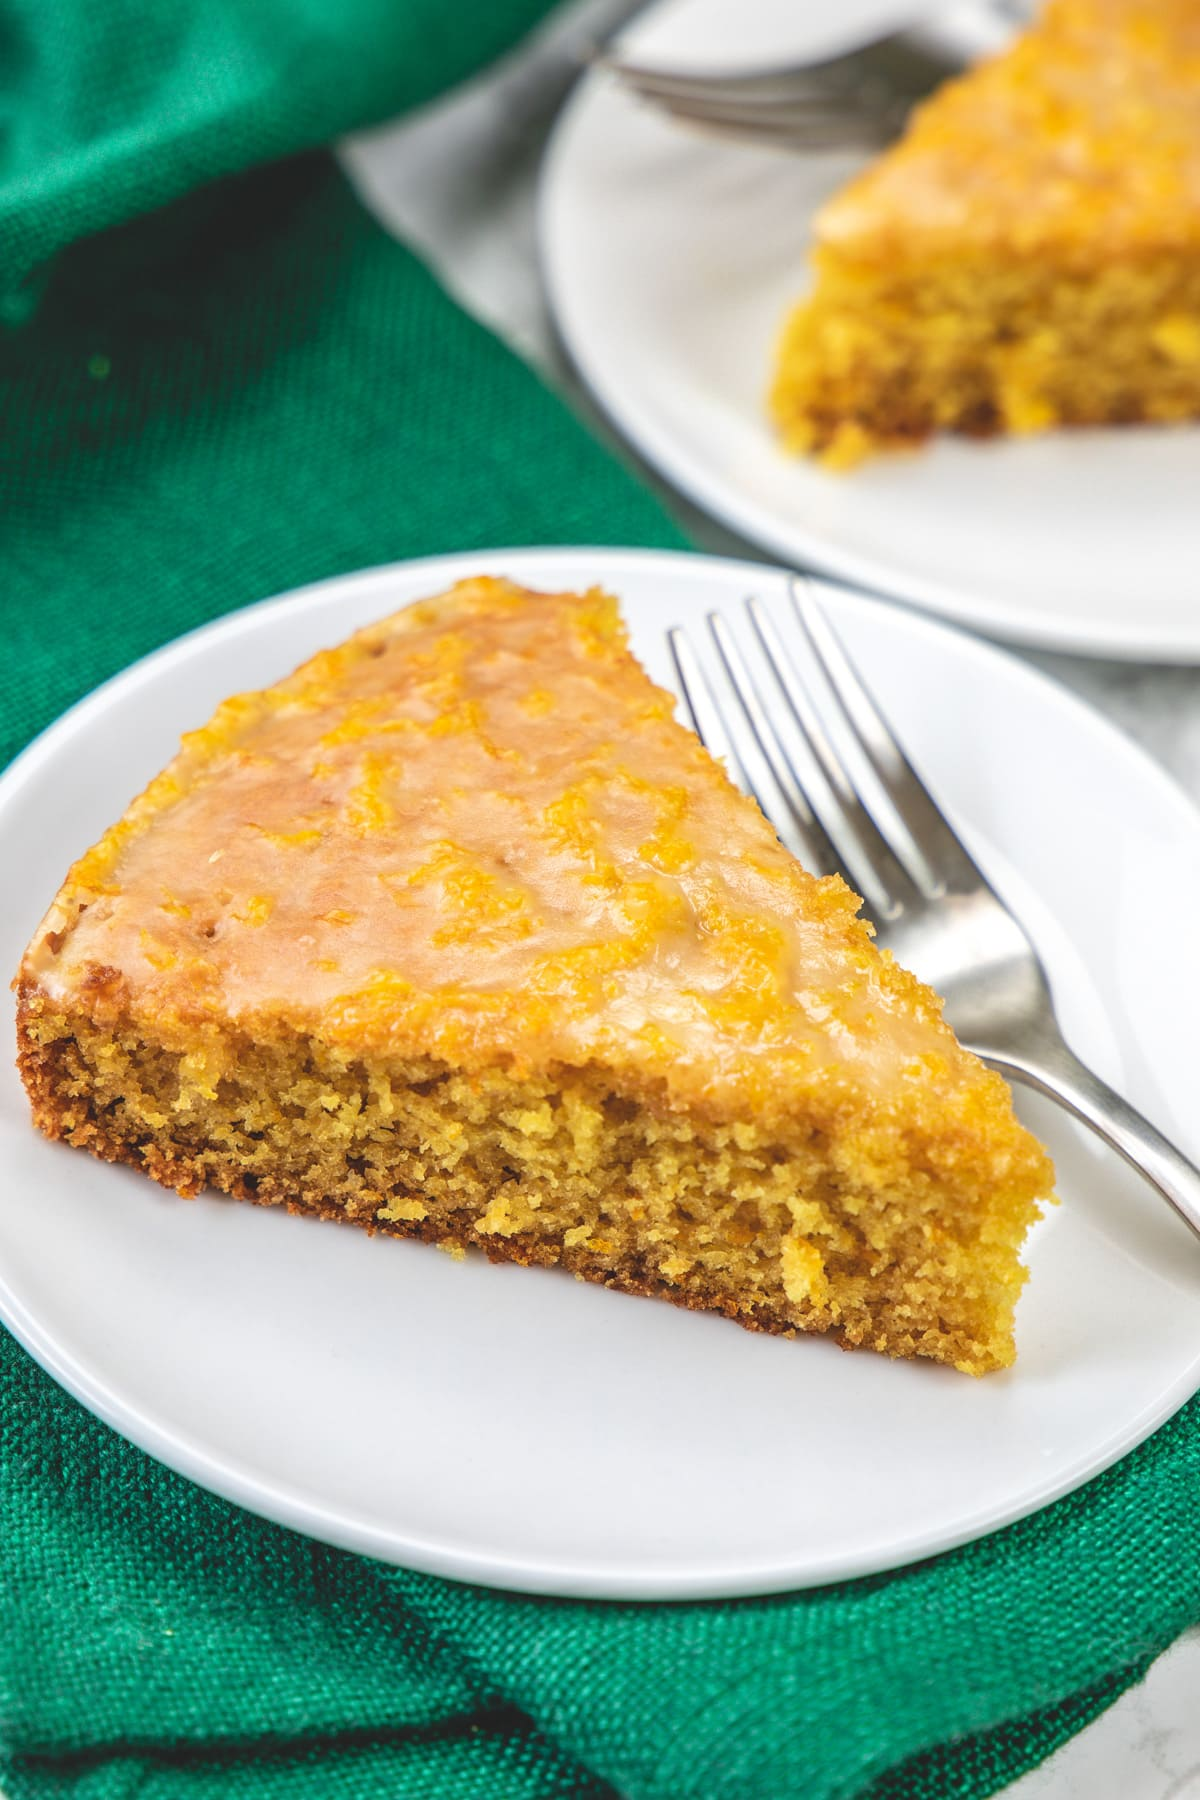 A slice of orange cake in a plate with fork.